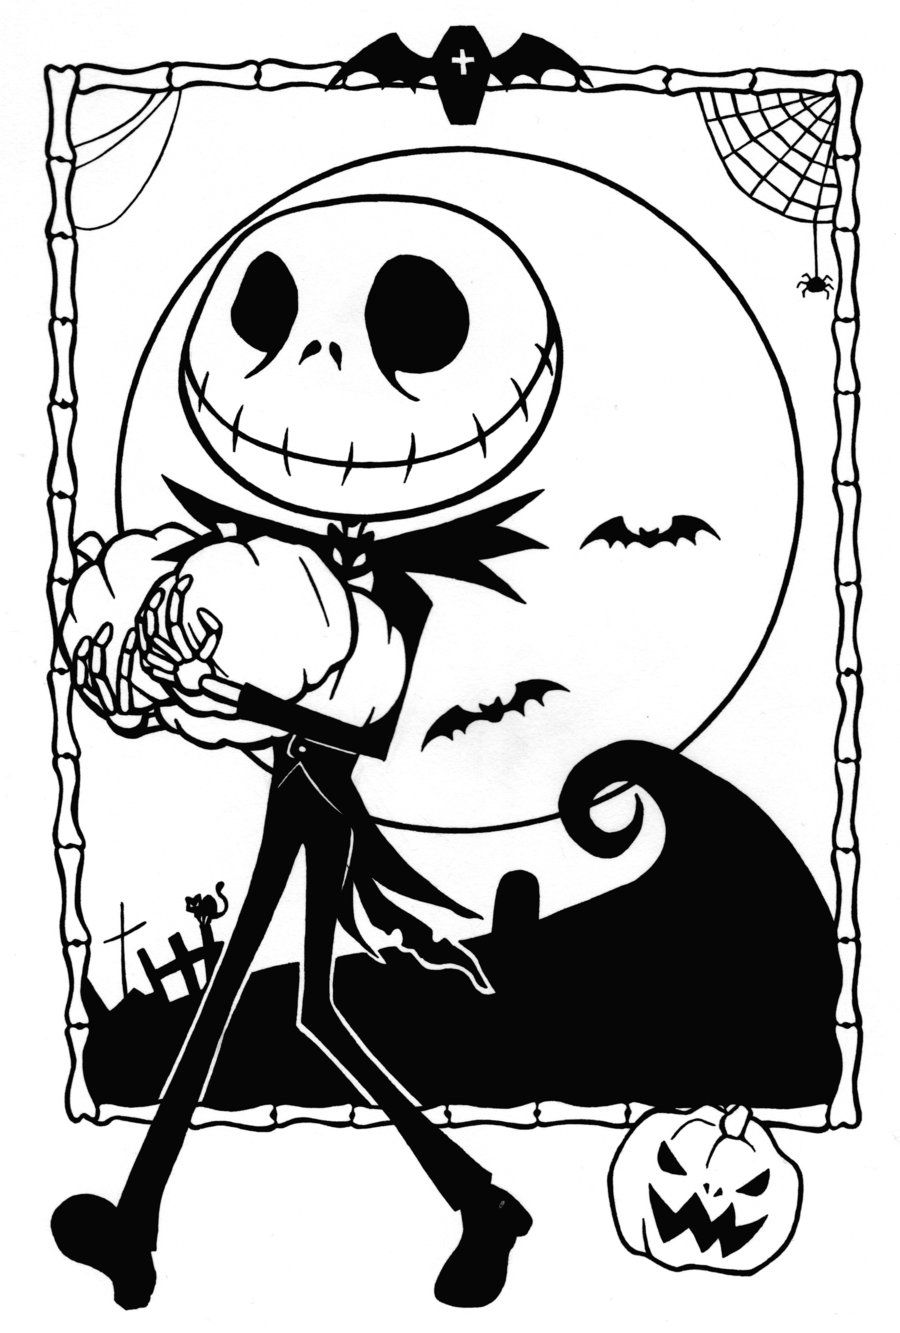 Free nightmare before christmas coloring pages to print - Free Printable Nightmare Before Christmas Coloring Pages